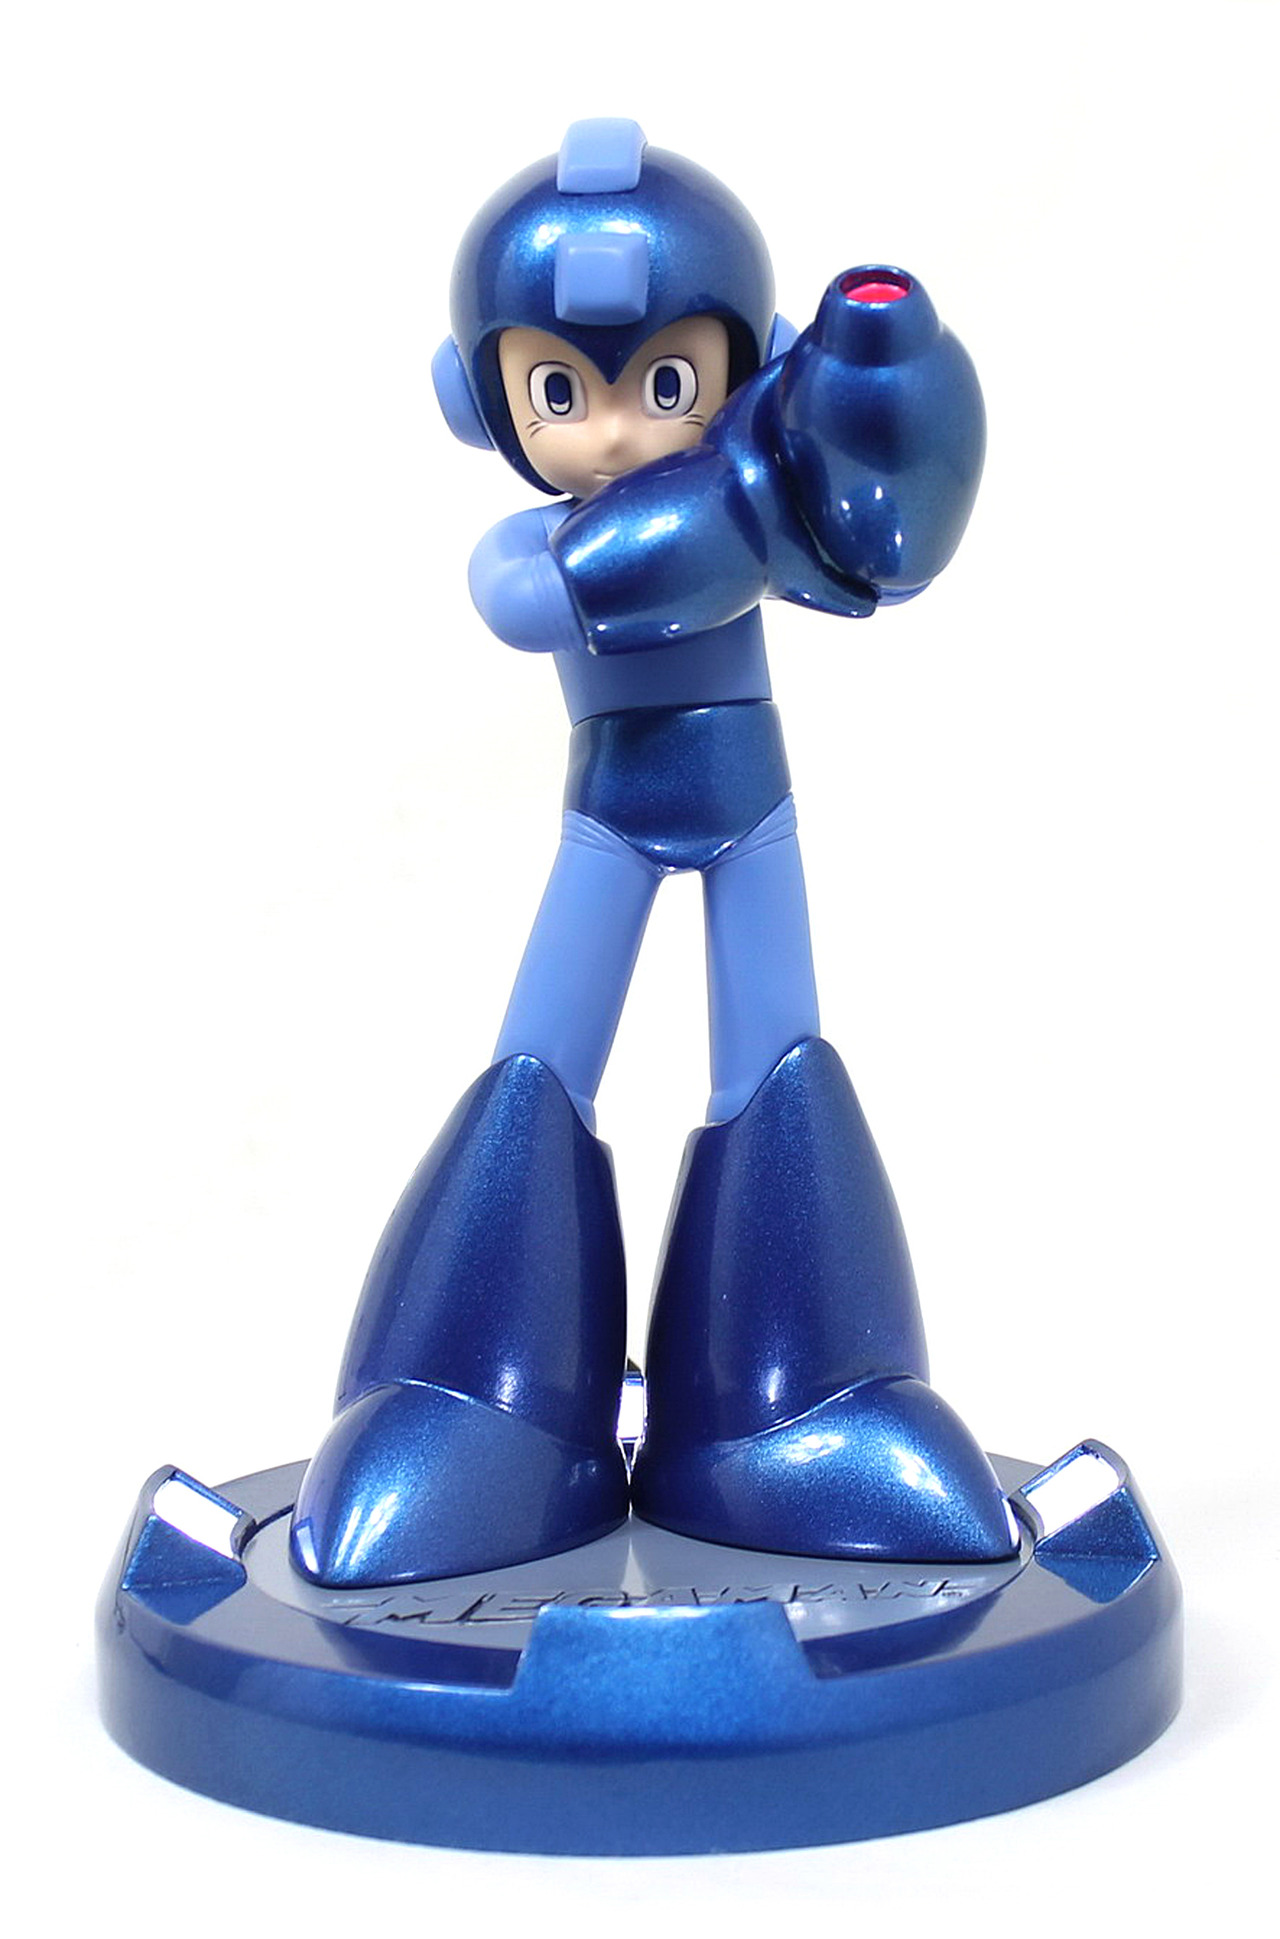 25th anniversary Mega Man statue 10-04-13 002